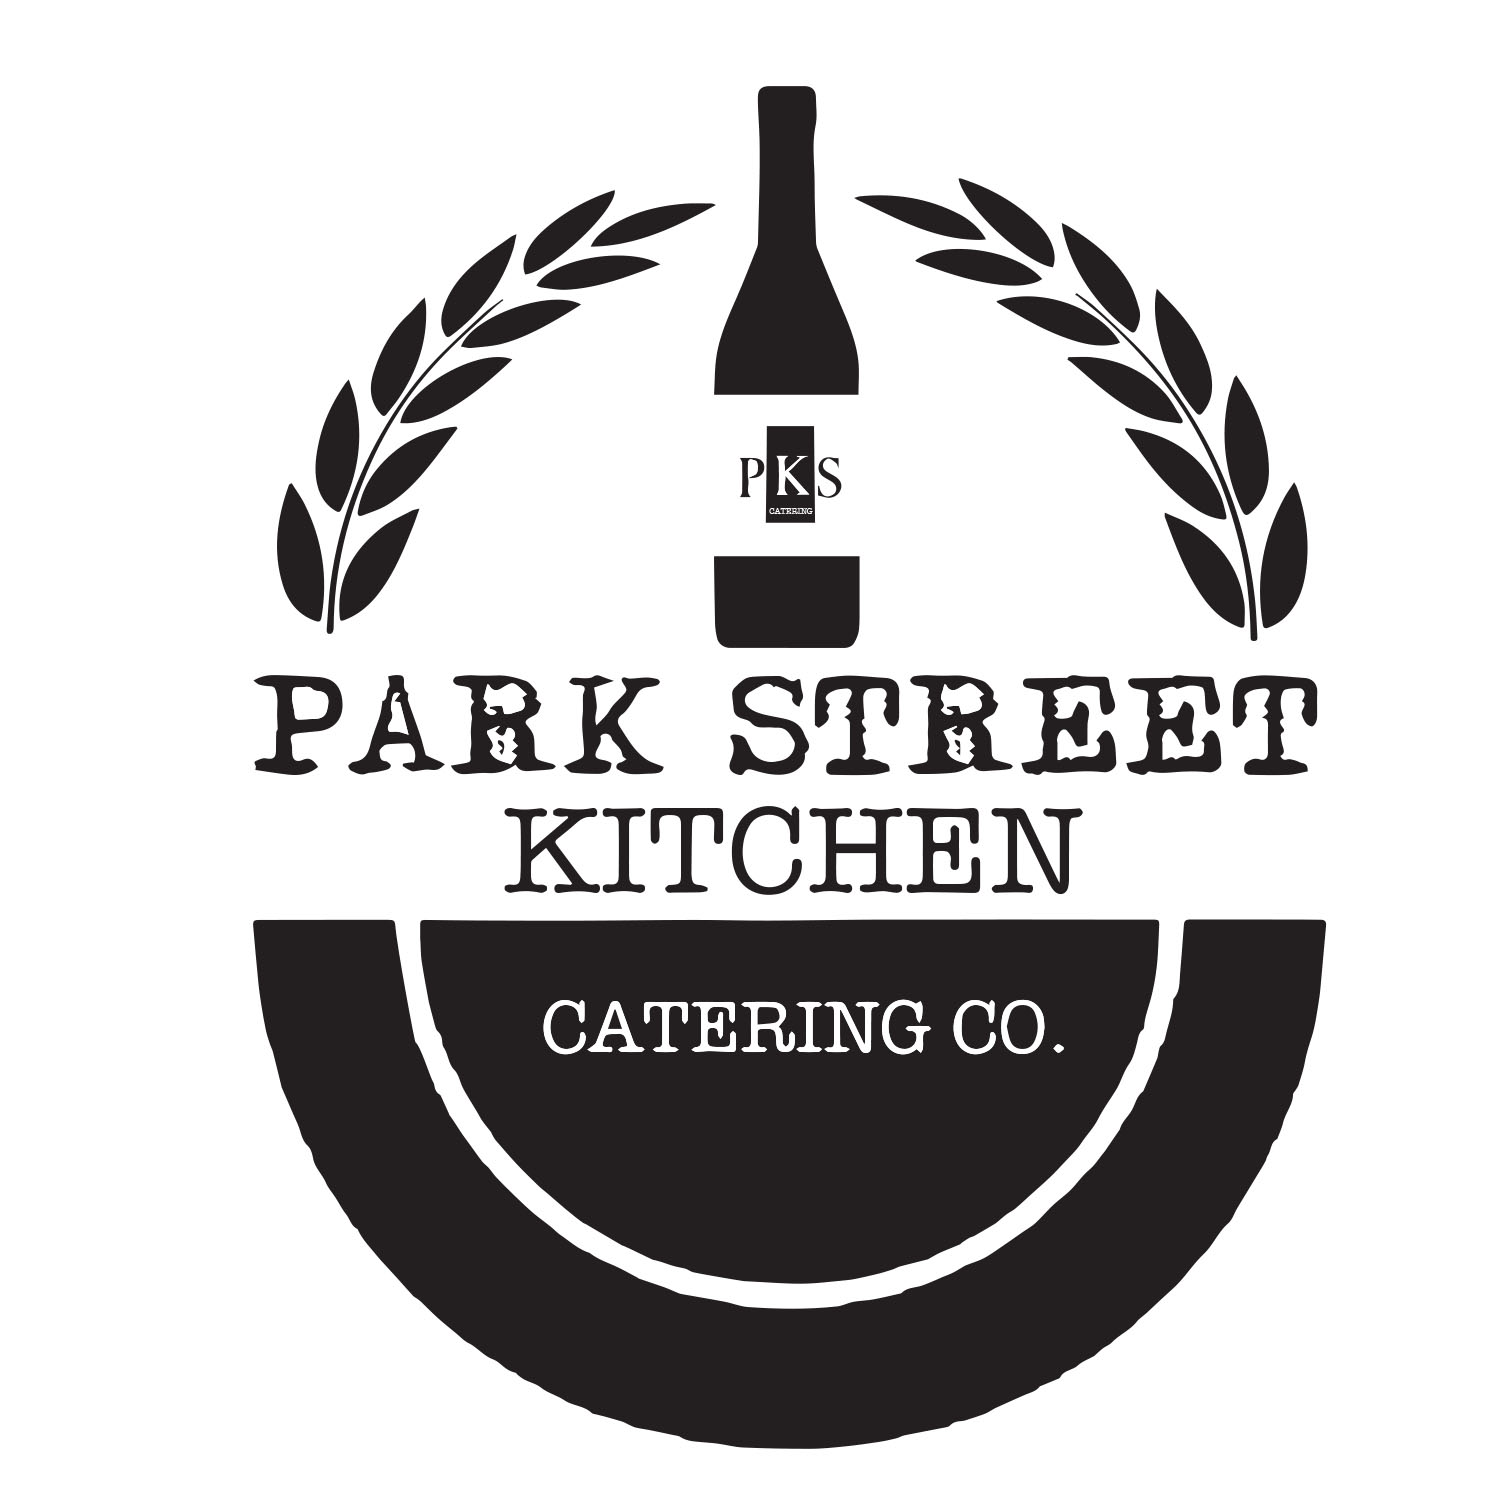 Park Street kitchen Catering Co.